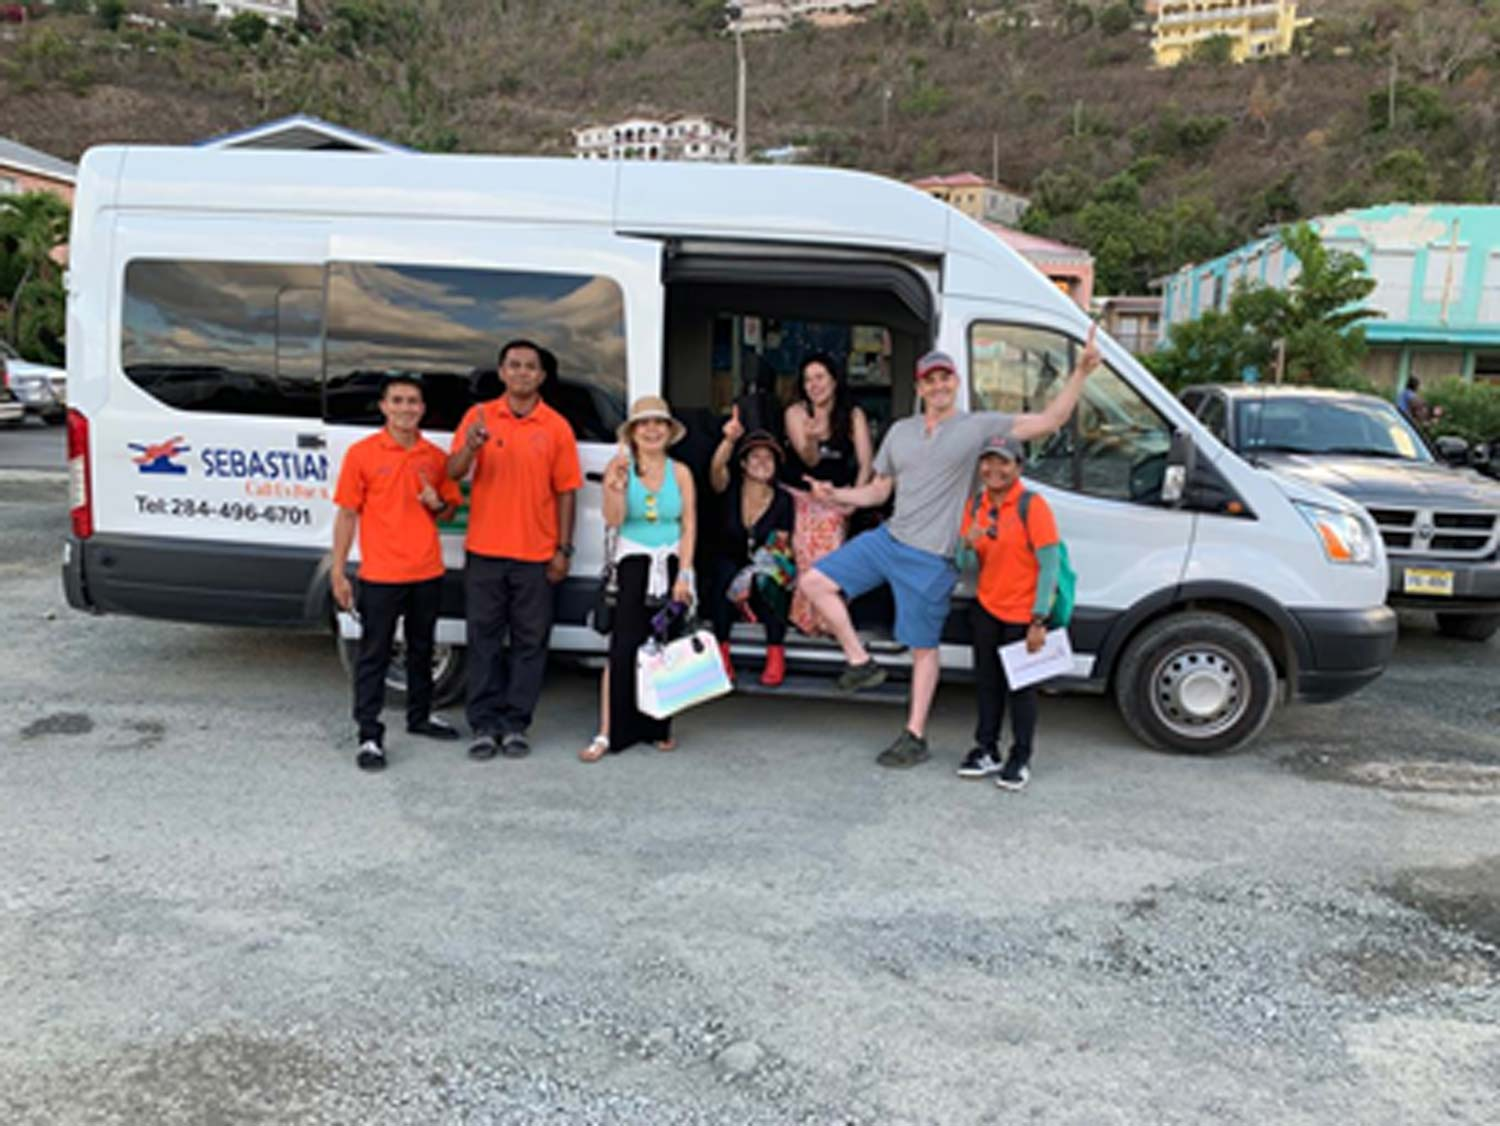 PRE-BOOK TAXI TRANSFERS ON TORTOLA, BVI PRIOR TO ARRIVAL ONLINE!